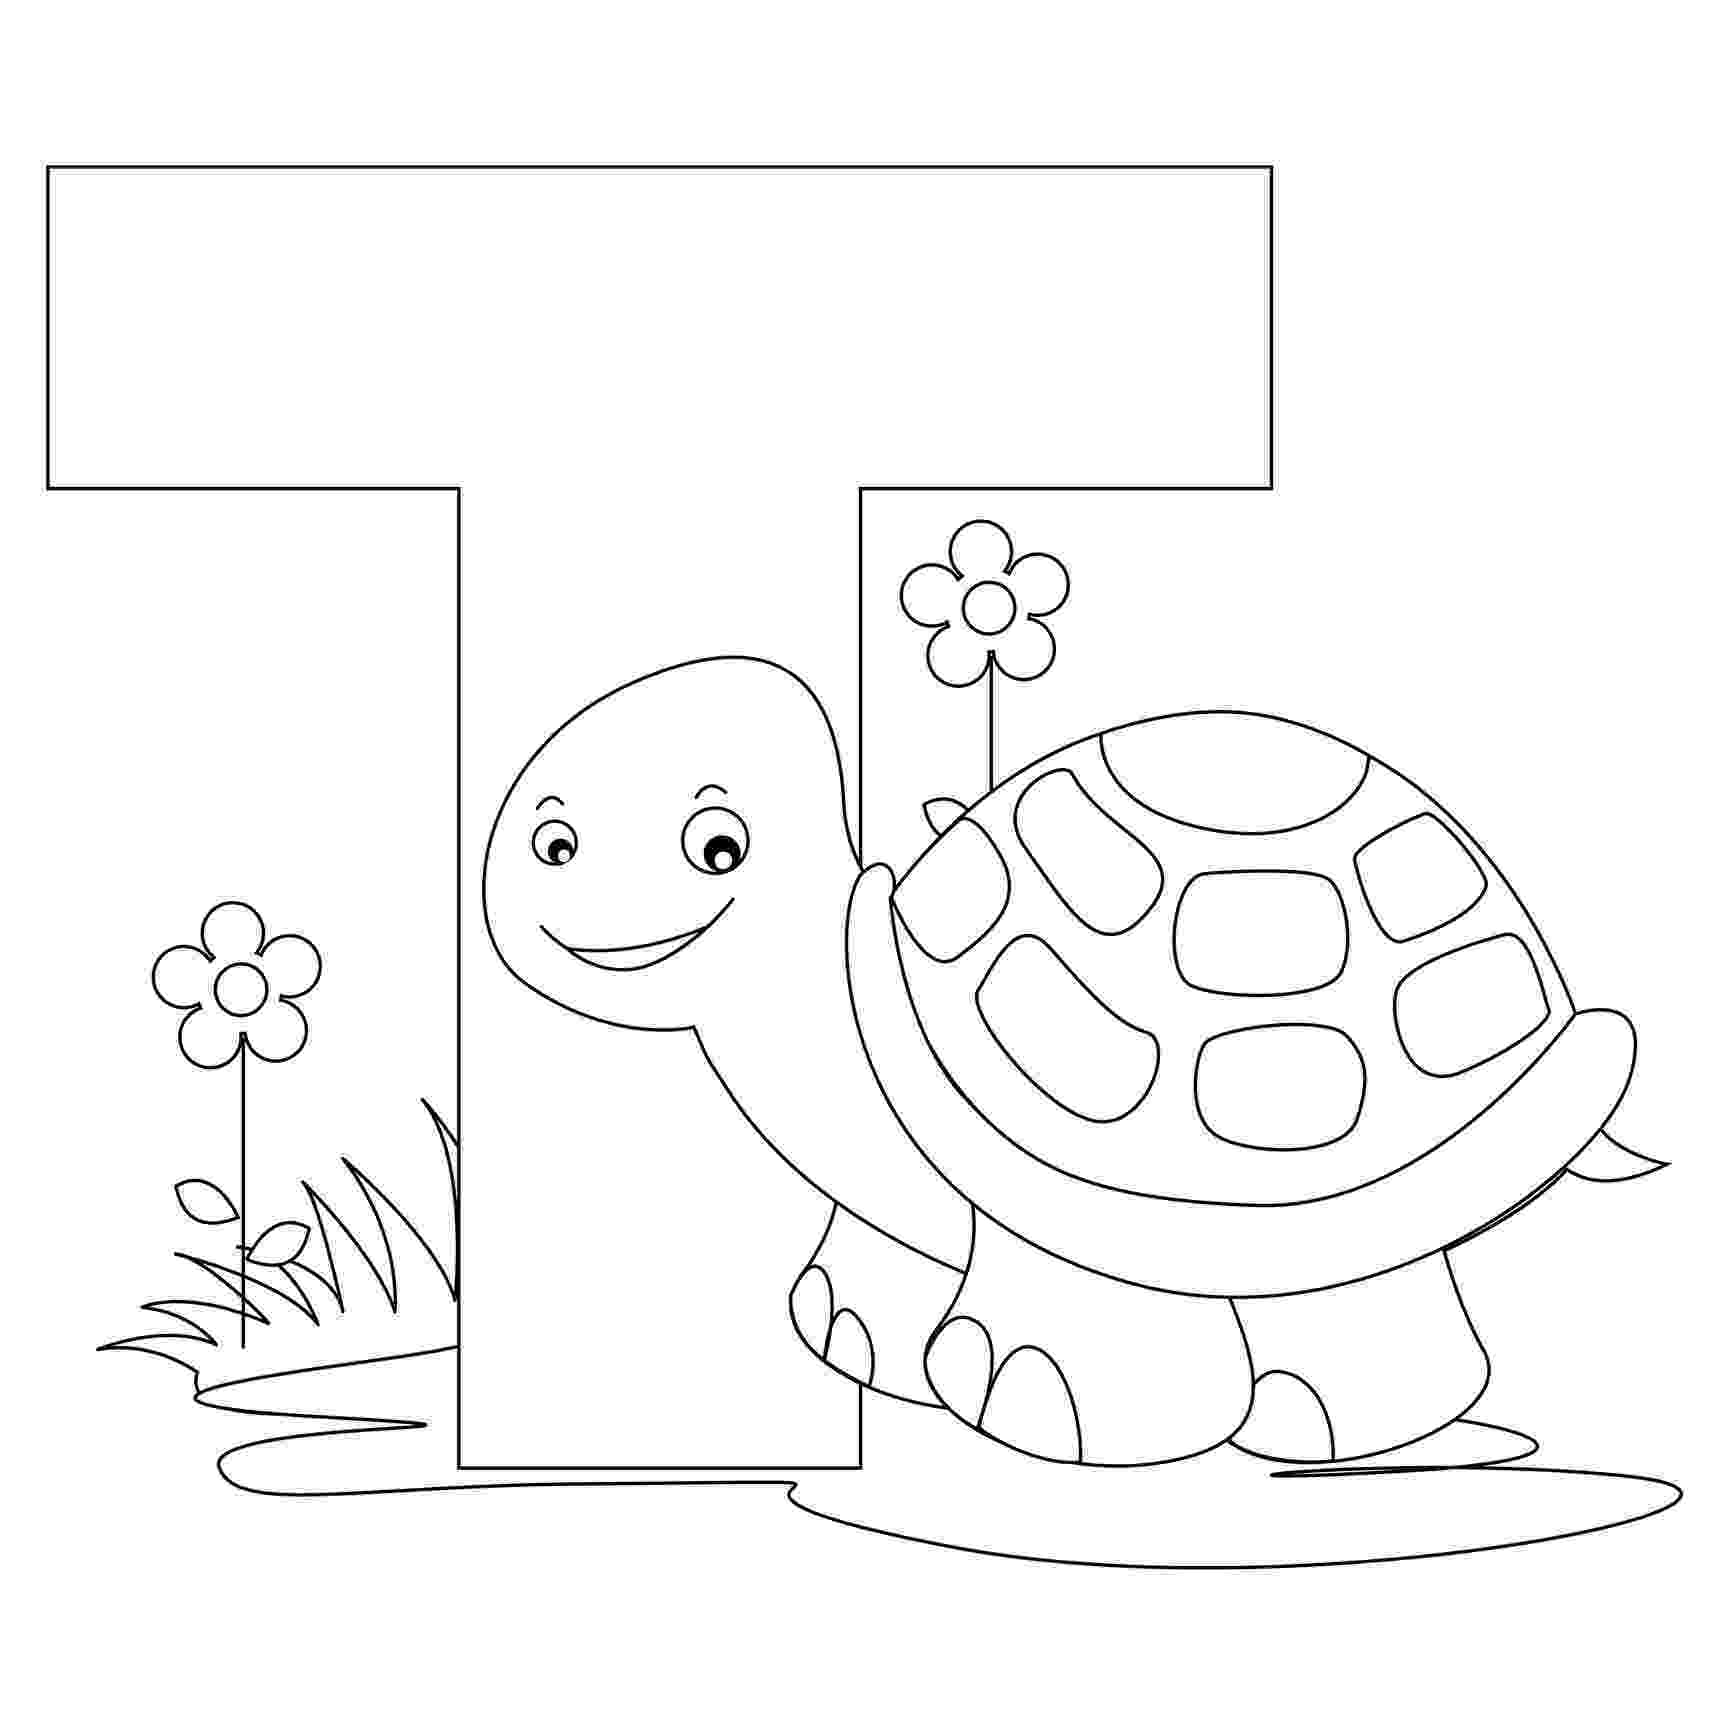 abc coloring book printable free printable abc book covers abc coloring pages abc printable book coloring